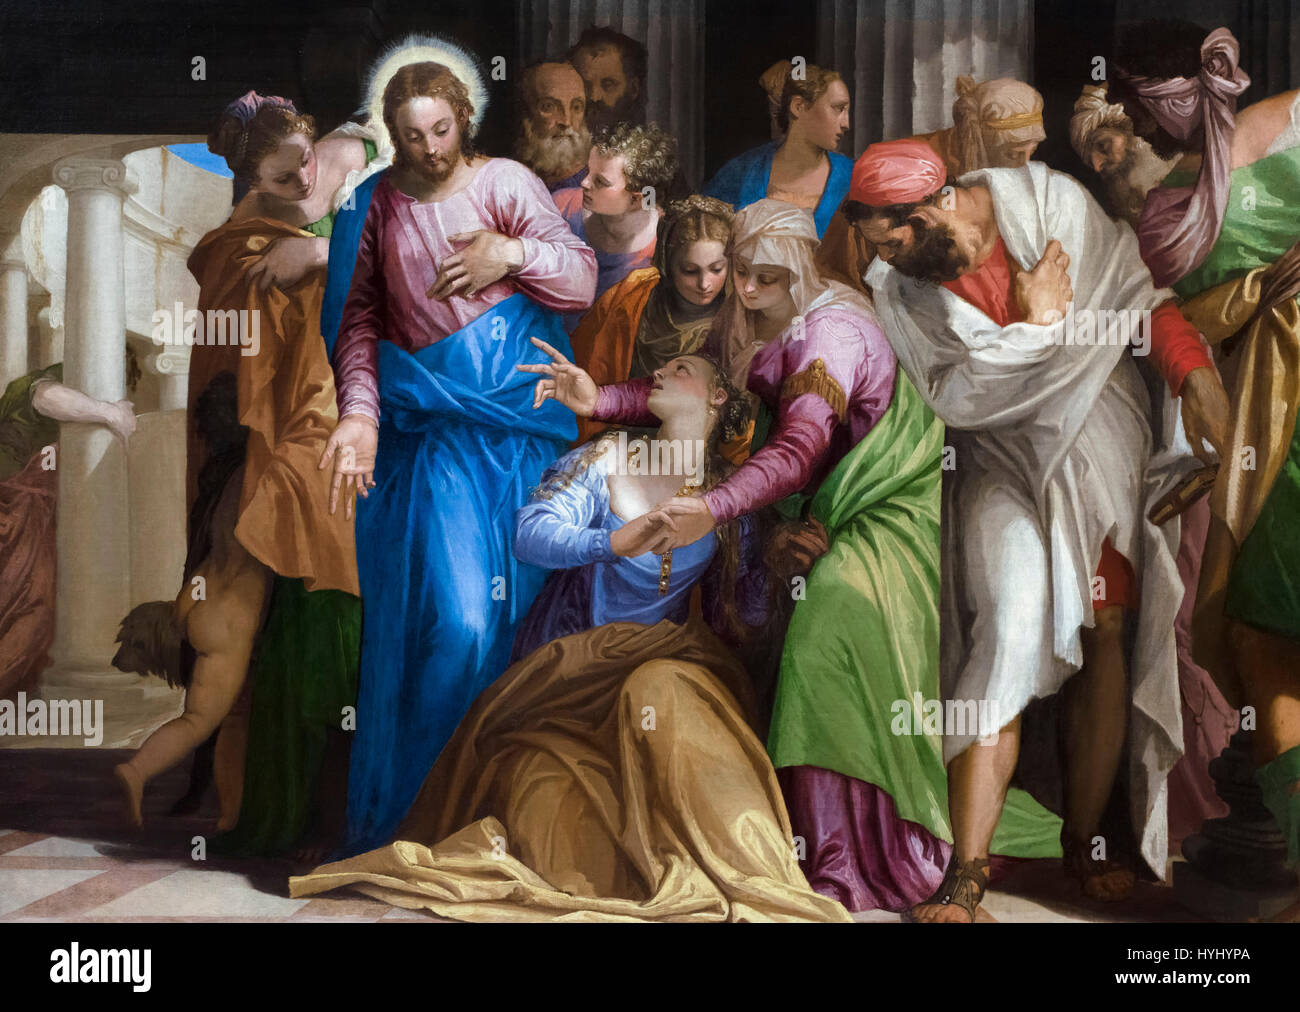 The Conversion of Mary Magdalene by Paolo Veronese (c.1528-1588), oil on canvas, 1548 - Stock Image